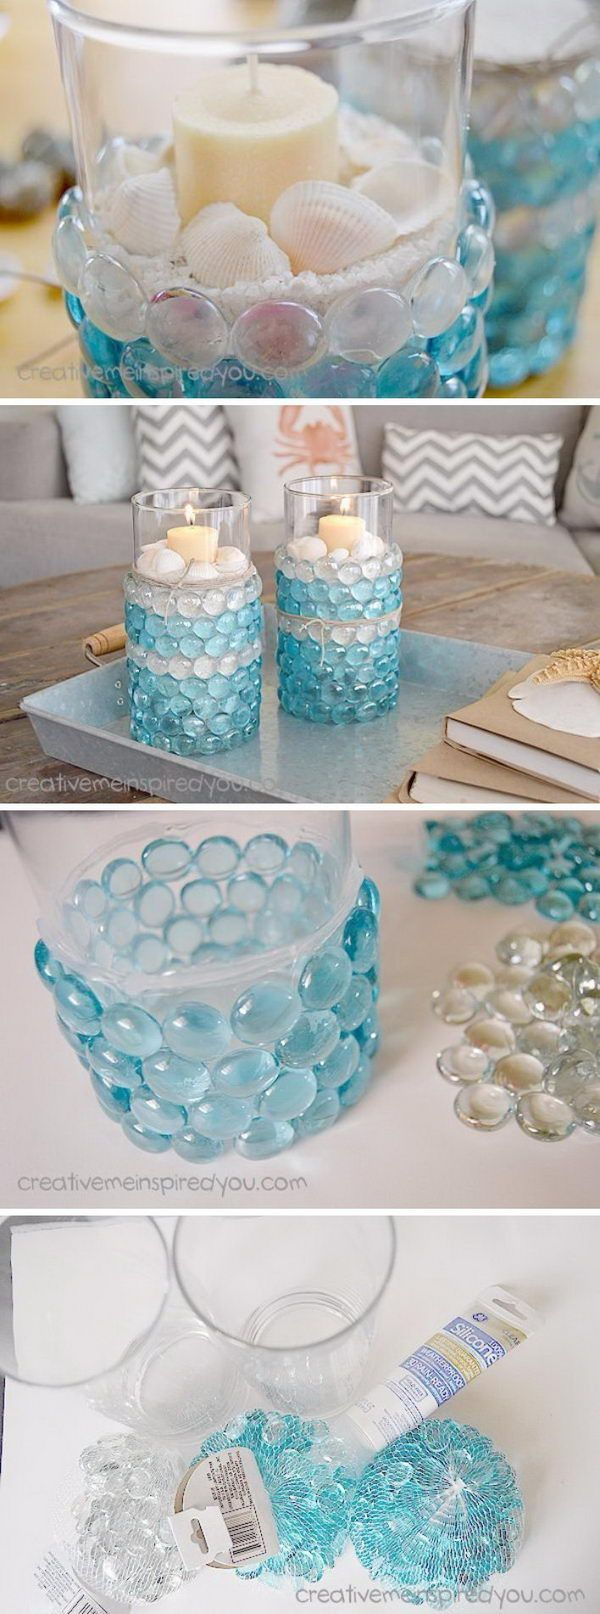 Dollar Store Candle Vases $1 store- CreativeMeInspiredYou,  #Candle #CreativeMeInspiredYou #d...